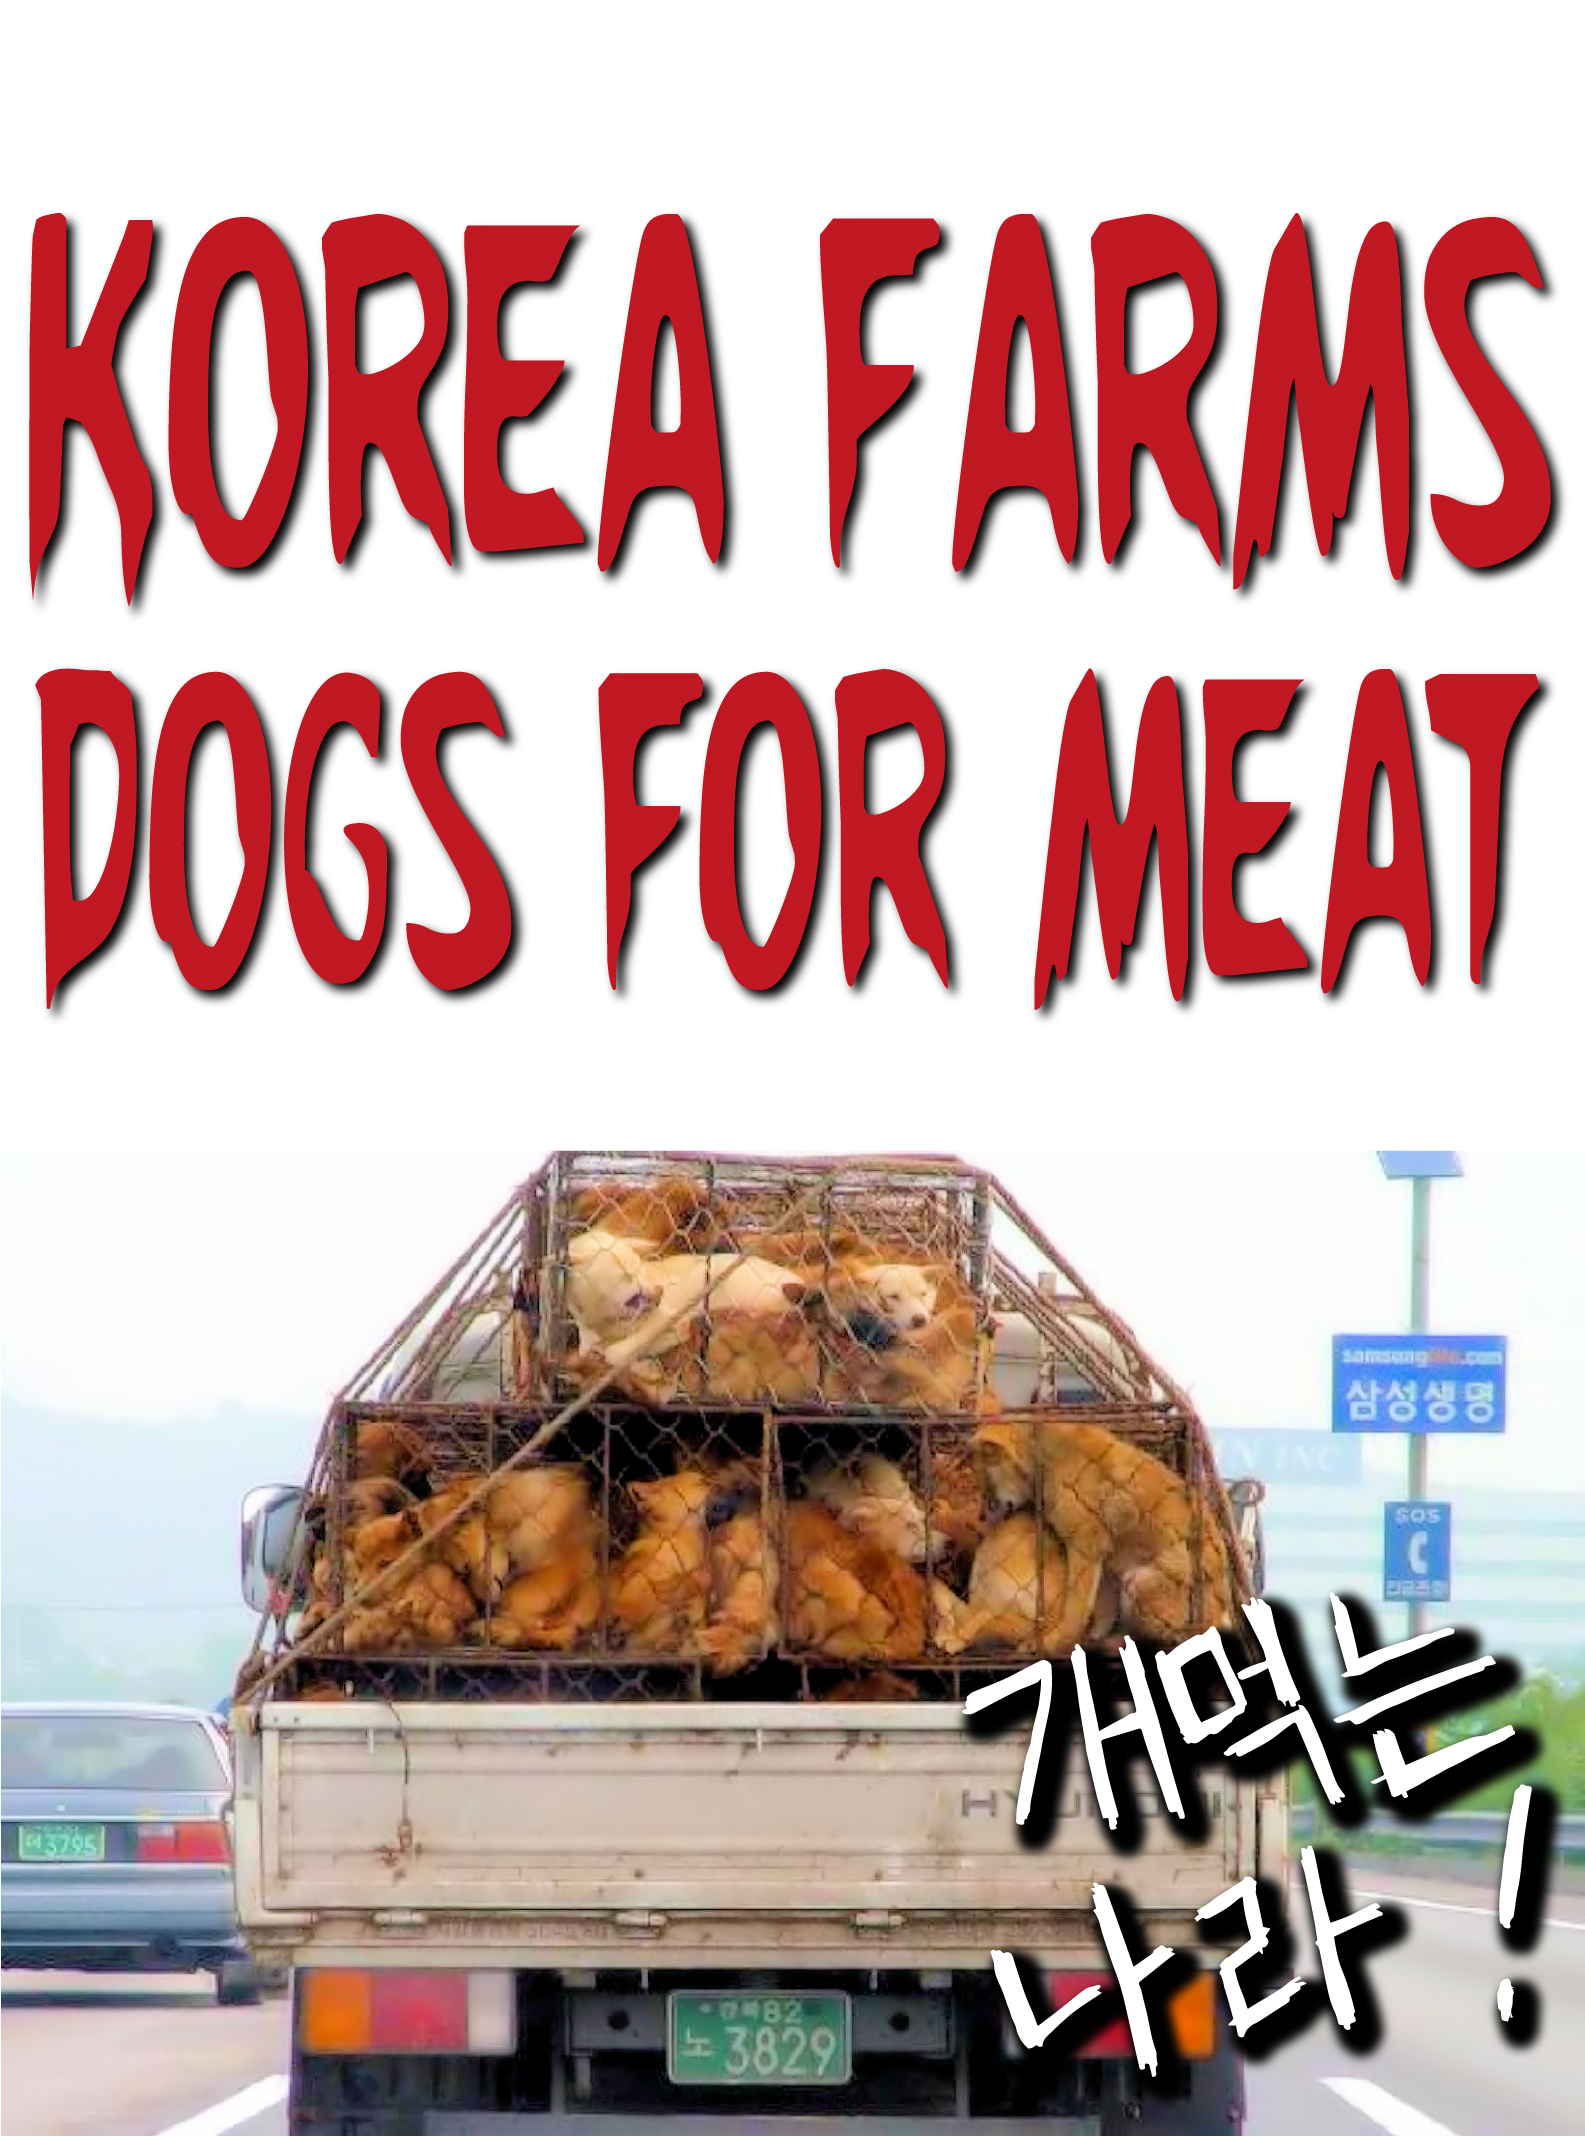 US sales: Korea Farms Dogs Protest Sign